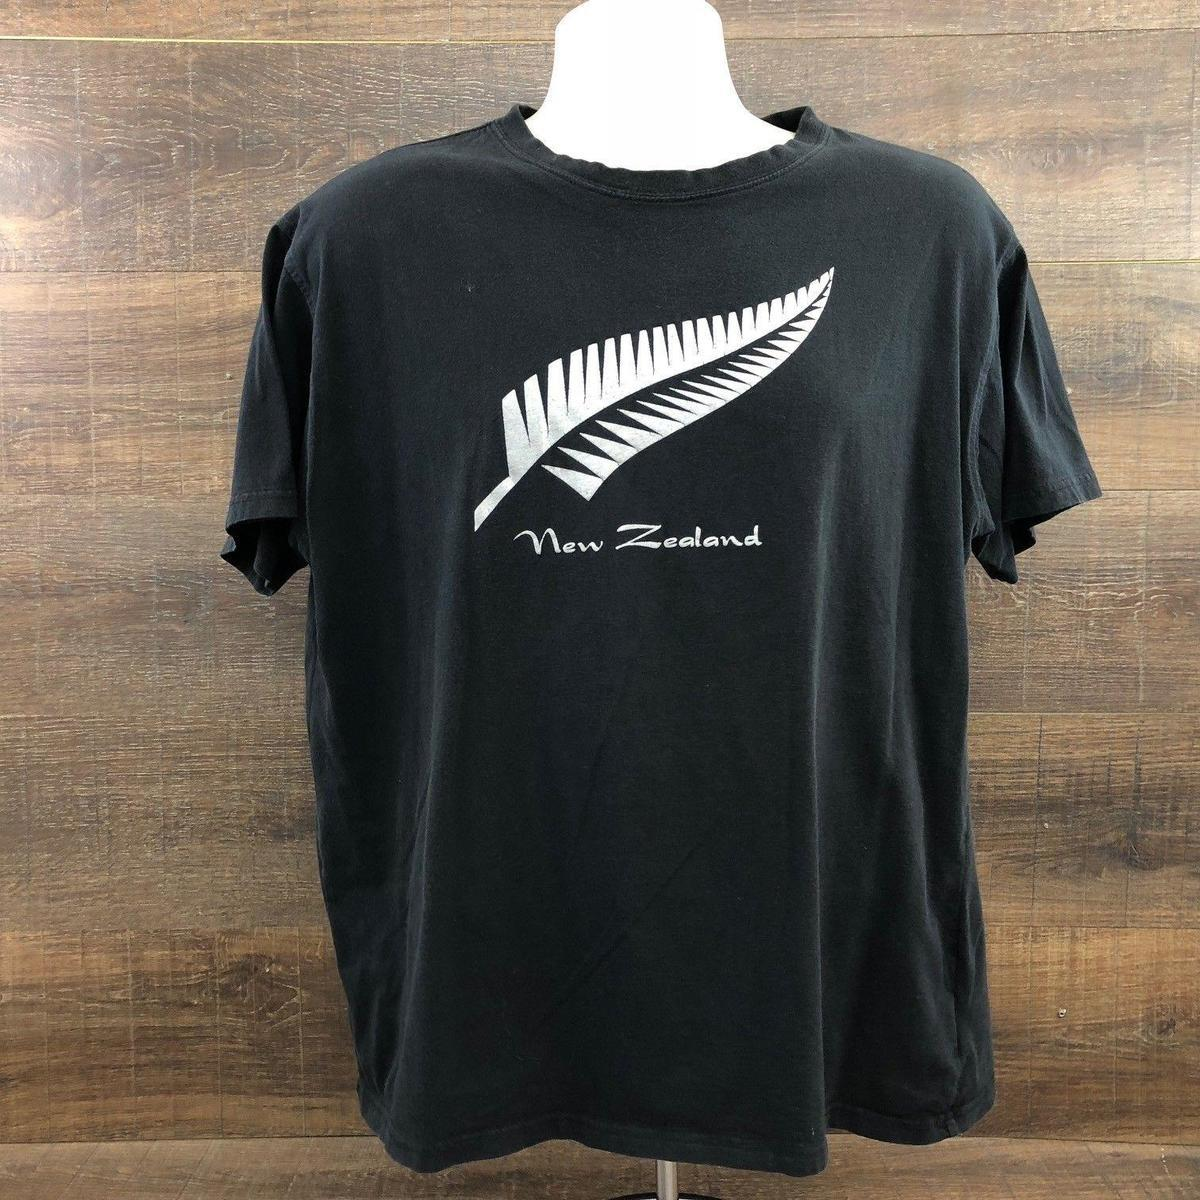 05c78c3084 New Zealand Rugby League Men's T-Shirt 407-20 Silver Fern Kiwi Symbol Black  XL